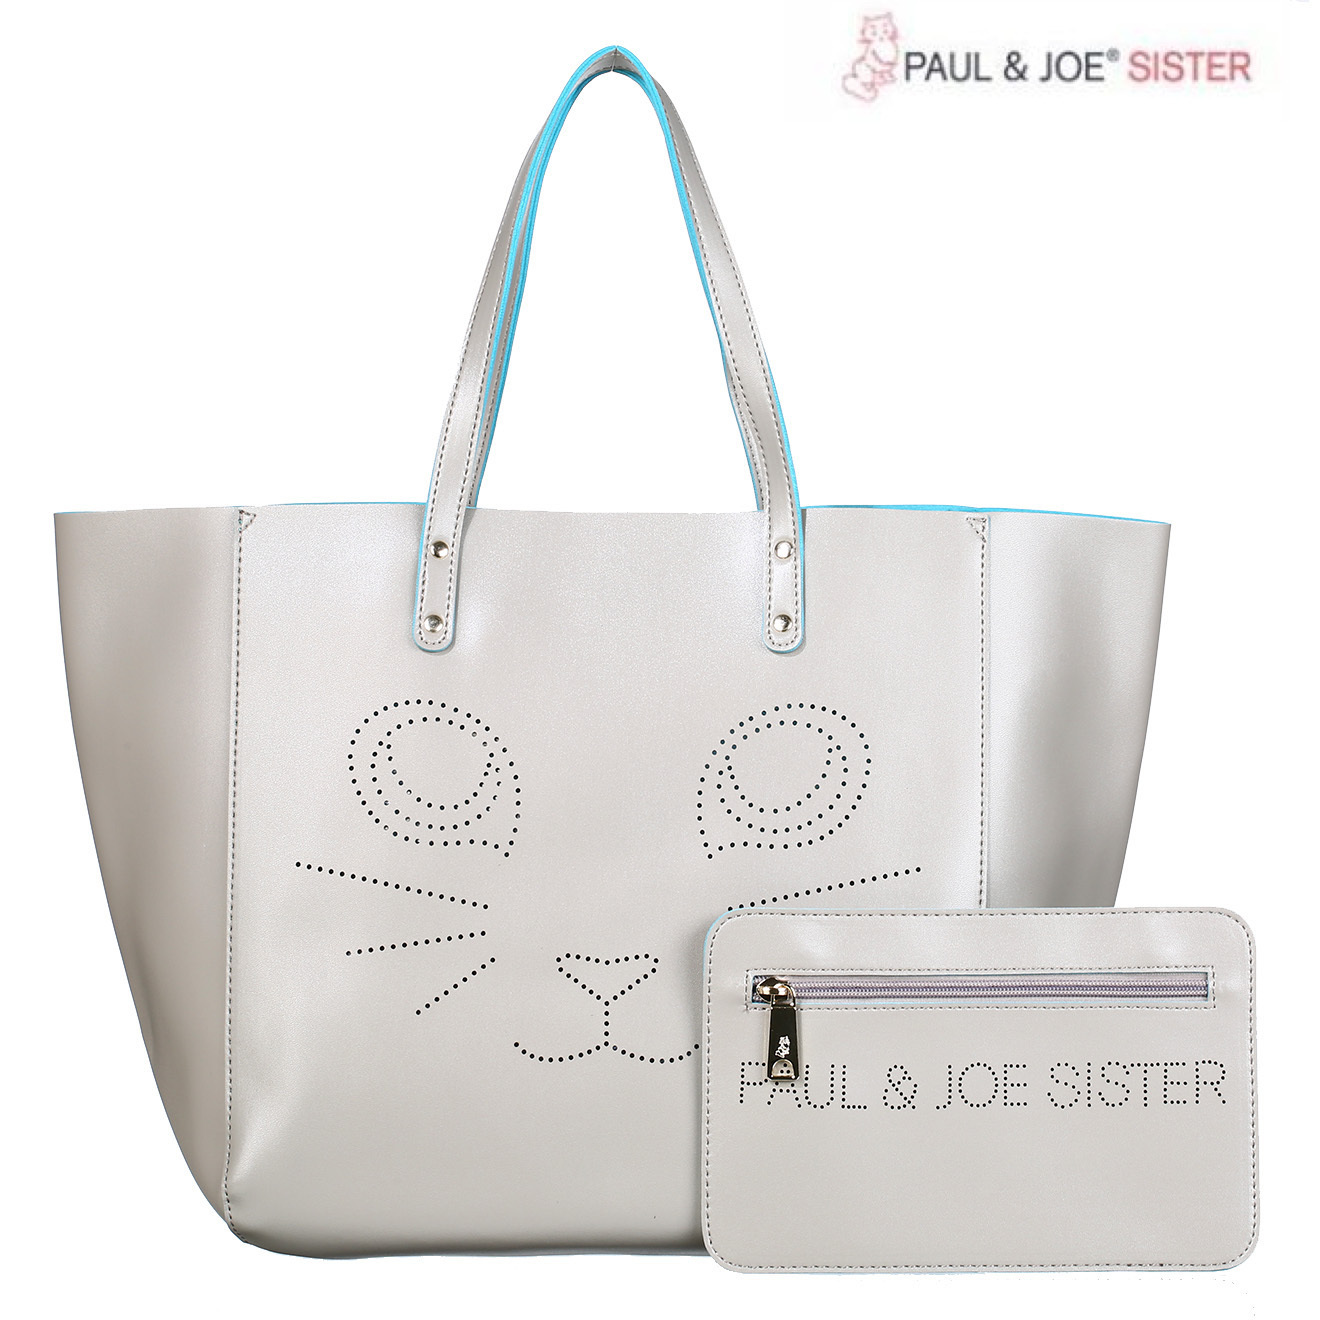 shop paul & joe sister bags